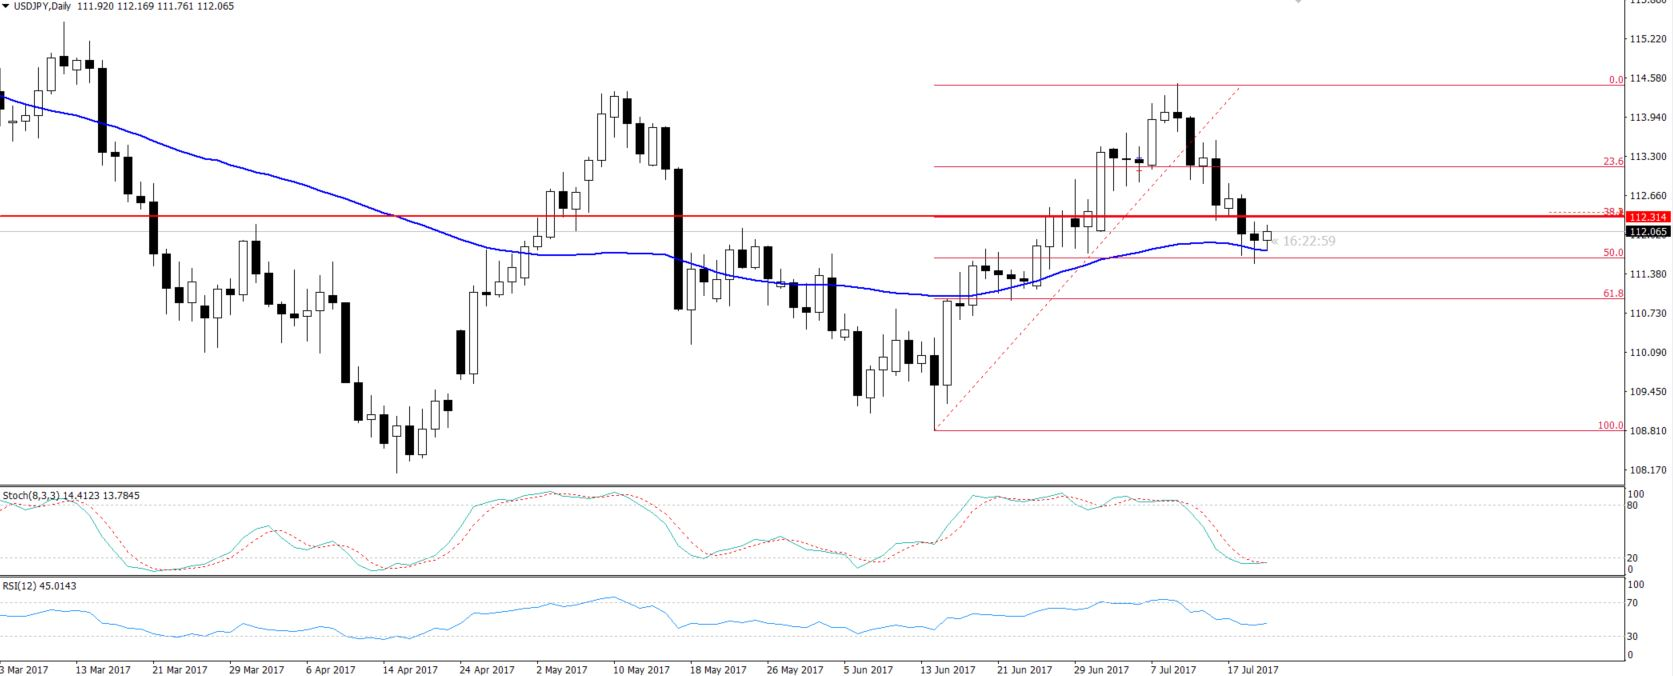 USDJPY - Daily Chart - 50% Retracement